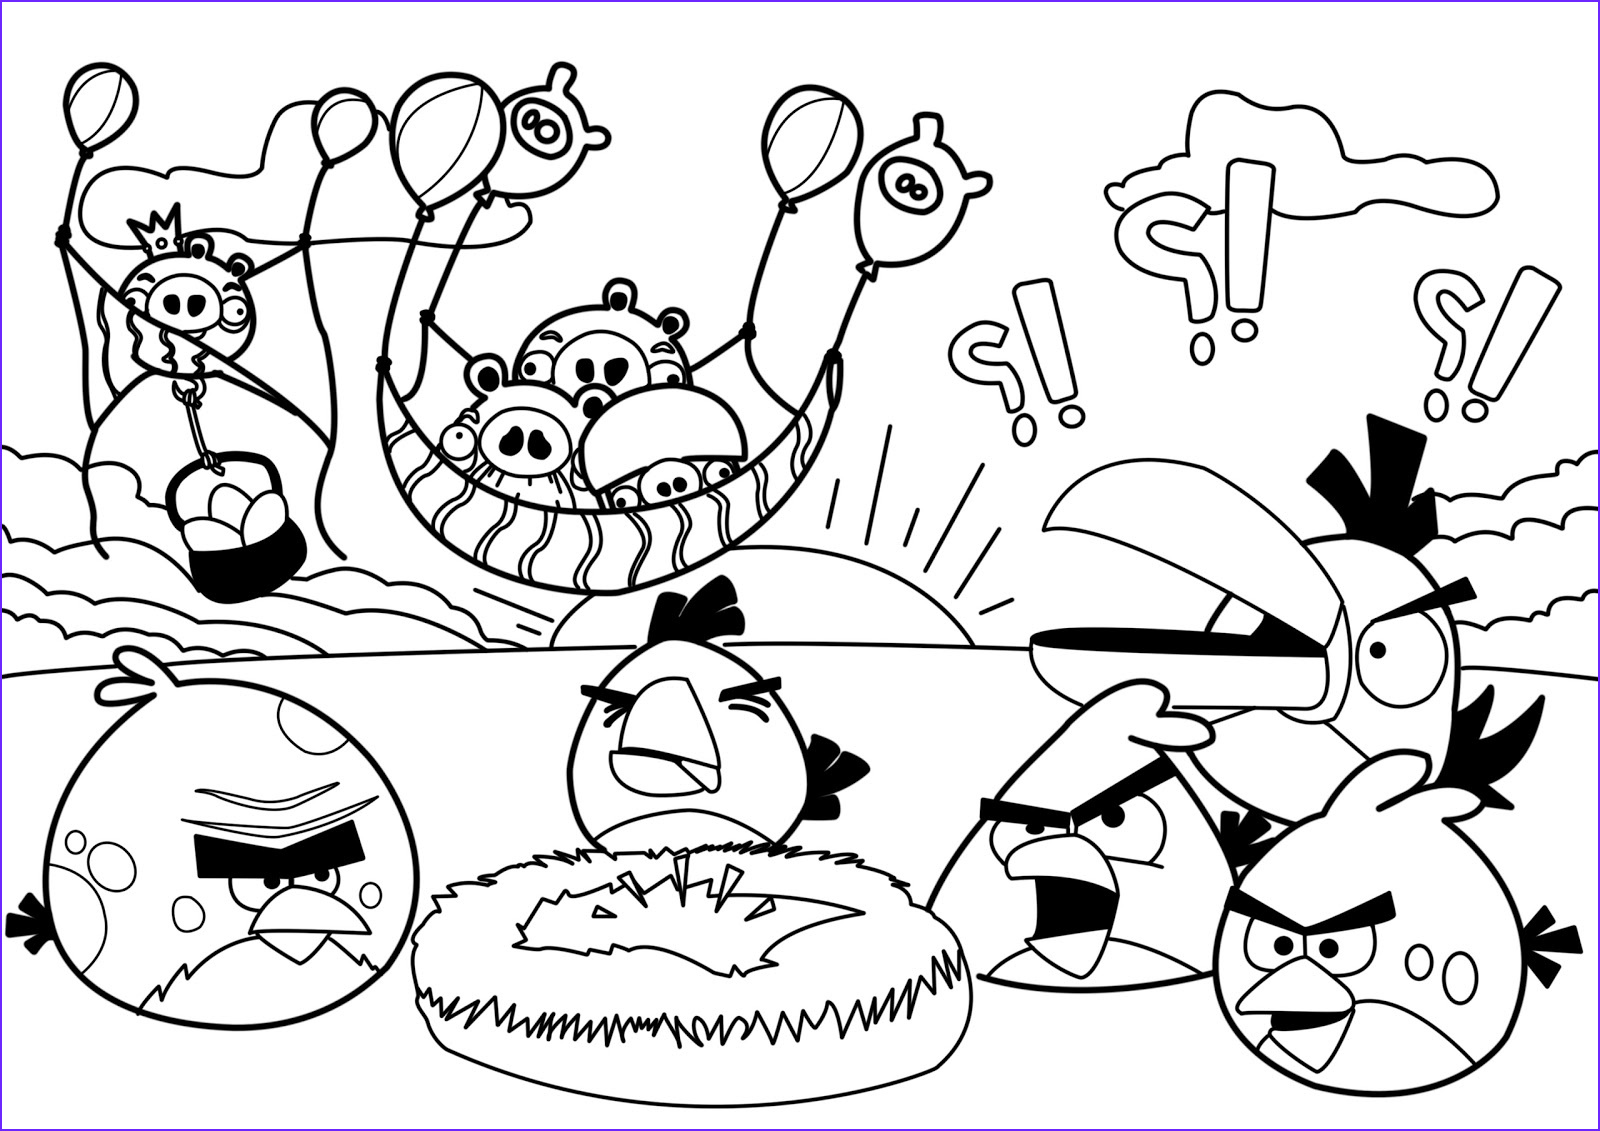 Angry Birds Coloring Pages Inspirational Gallery New Angry Birds Coloring Pages